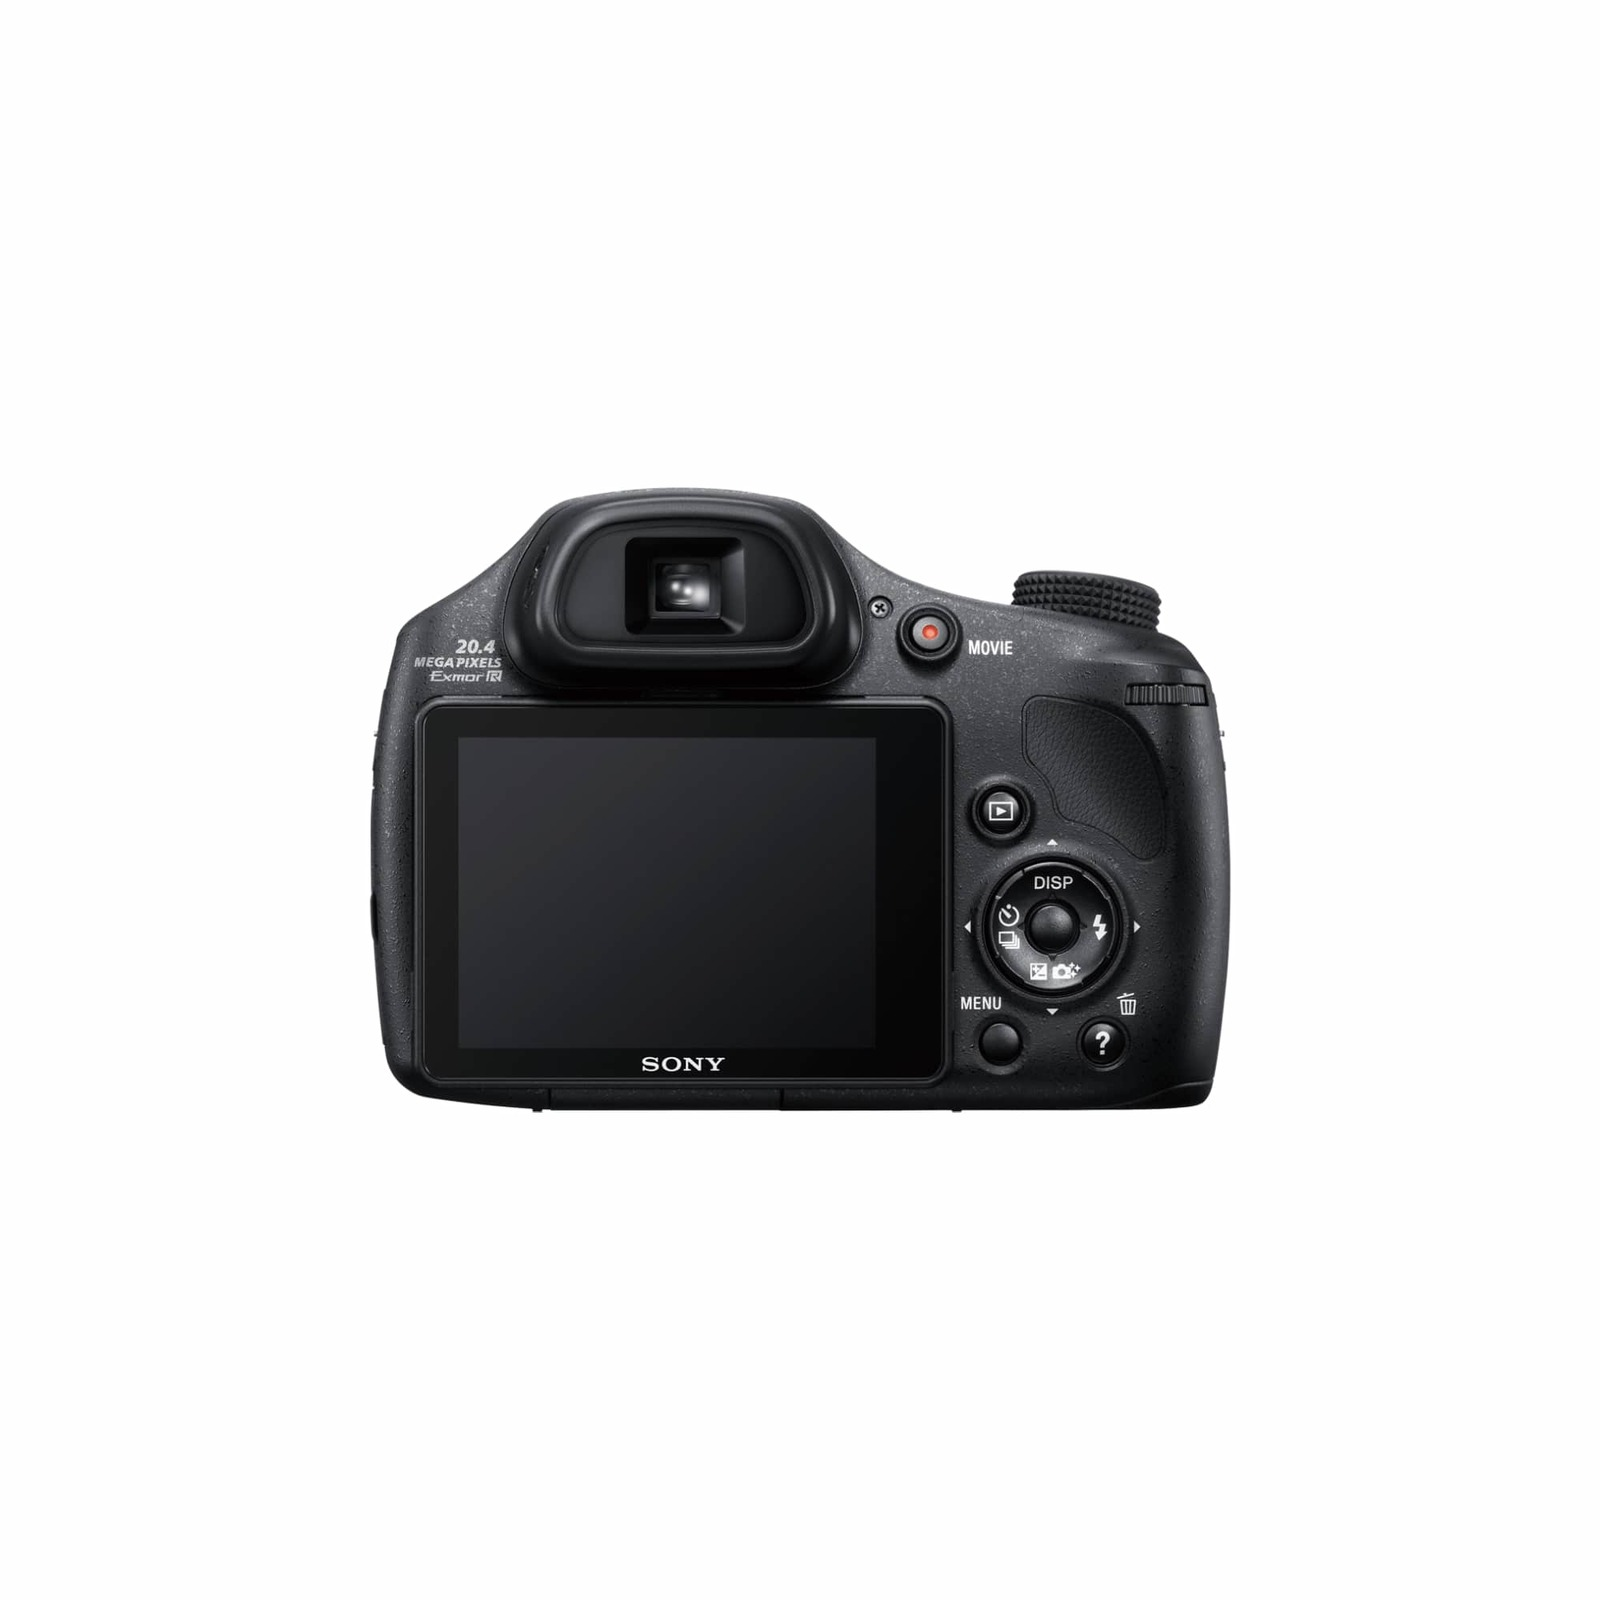 Sony HX350 Compact Camera with 50x Optical Zoom image